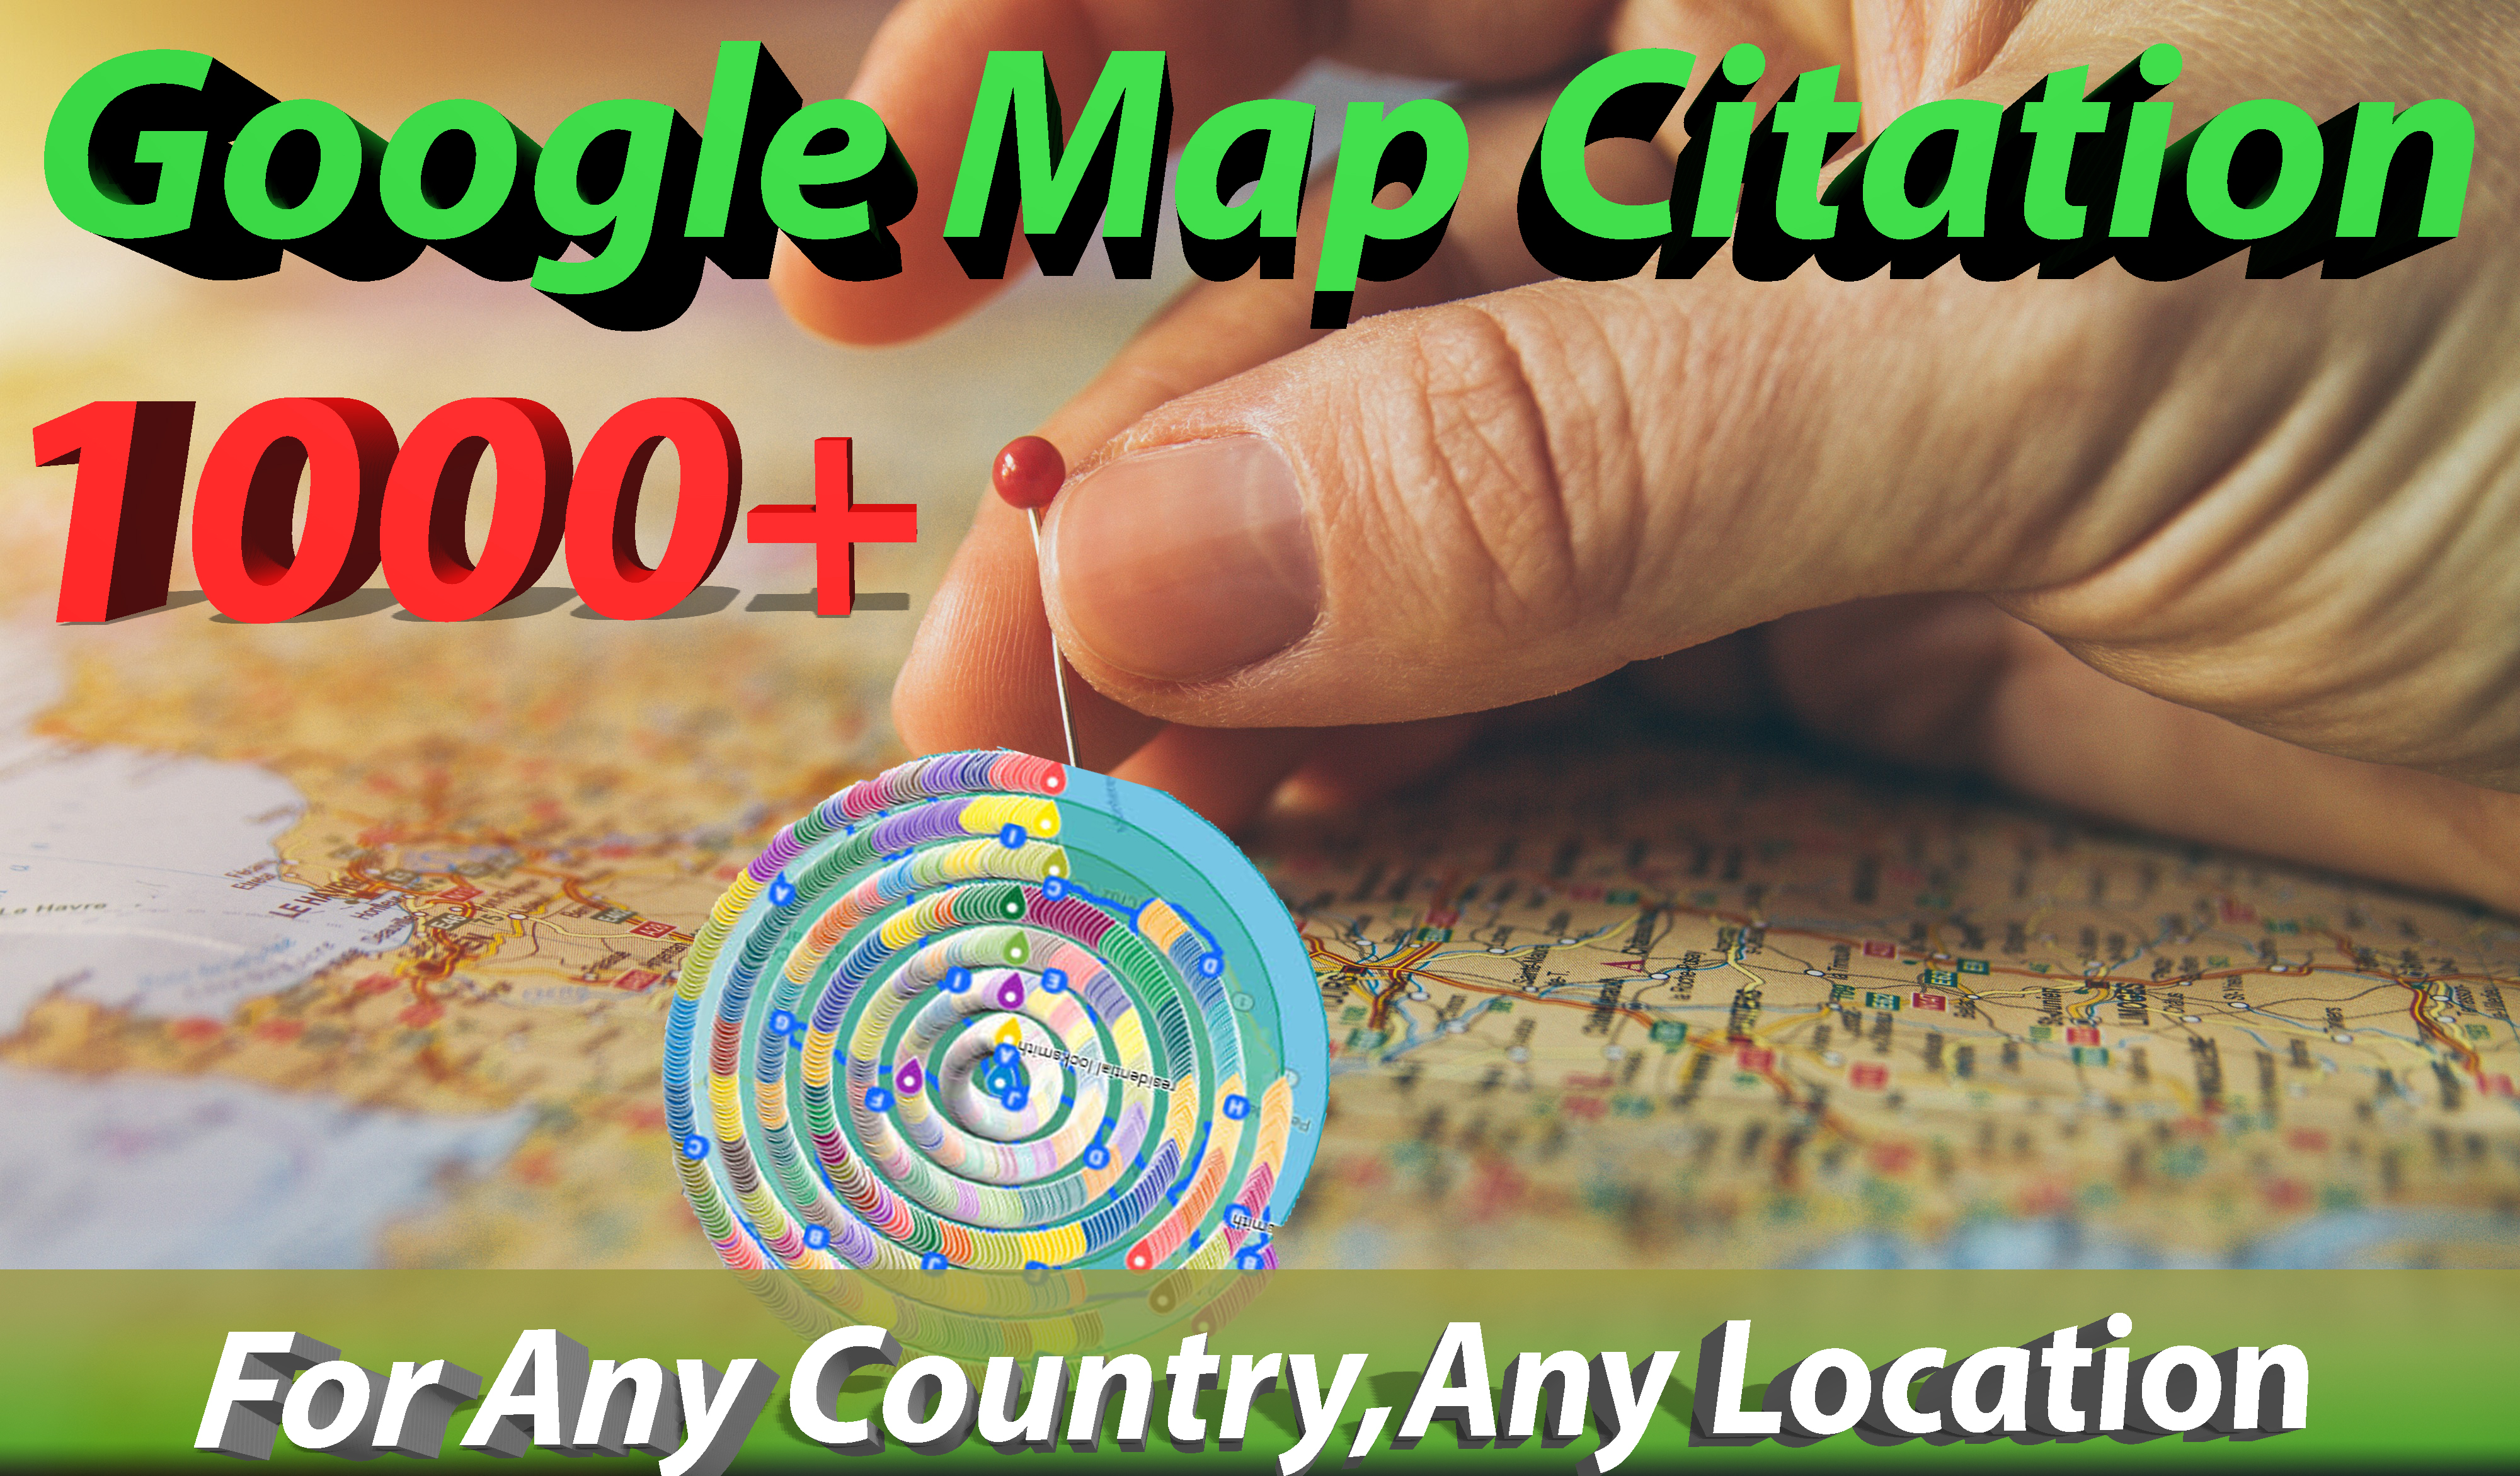 I will create 1000 google map citations to rank your gmb higher